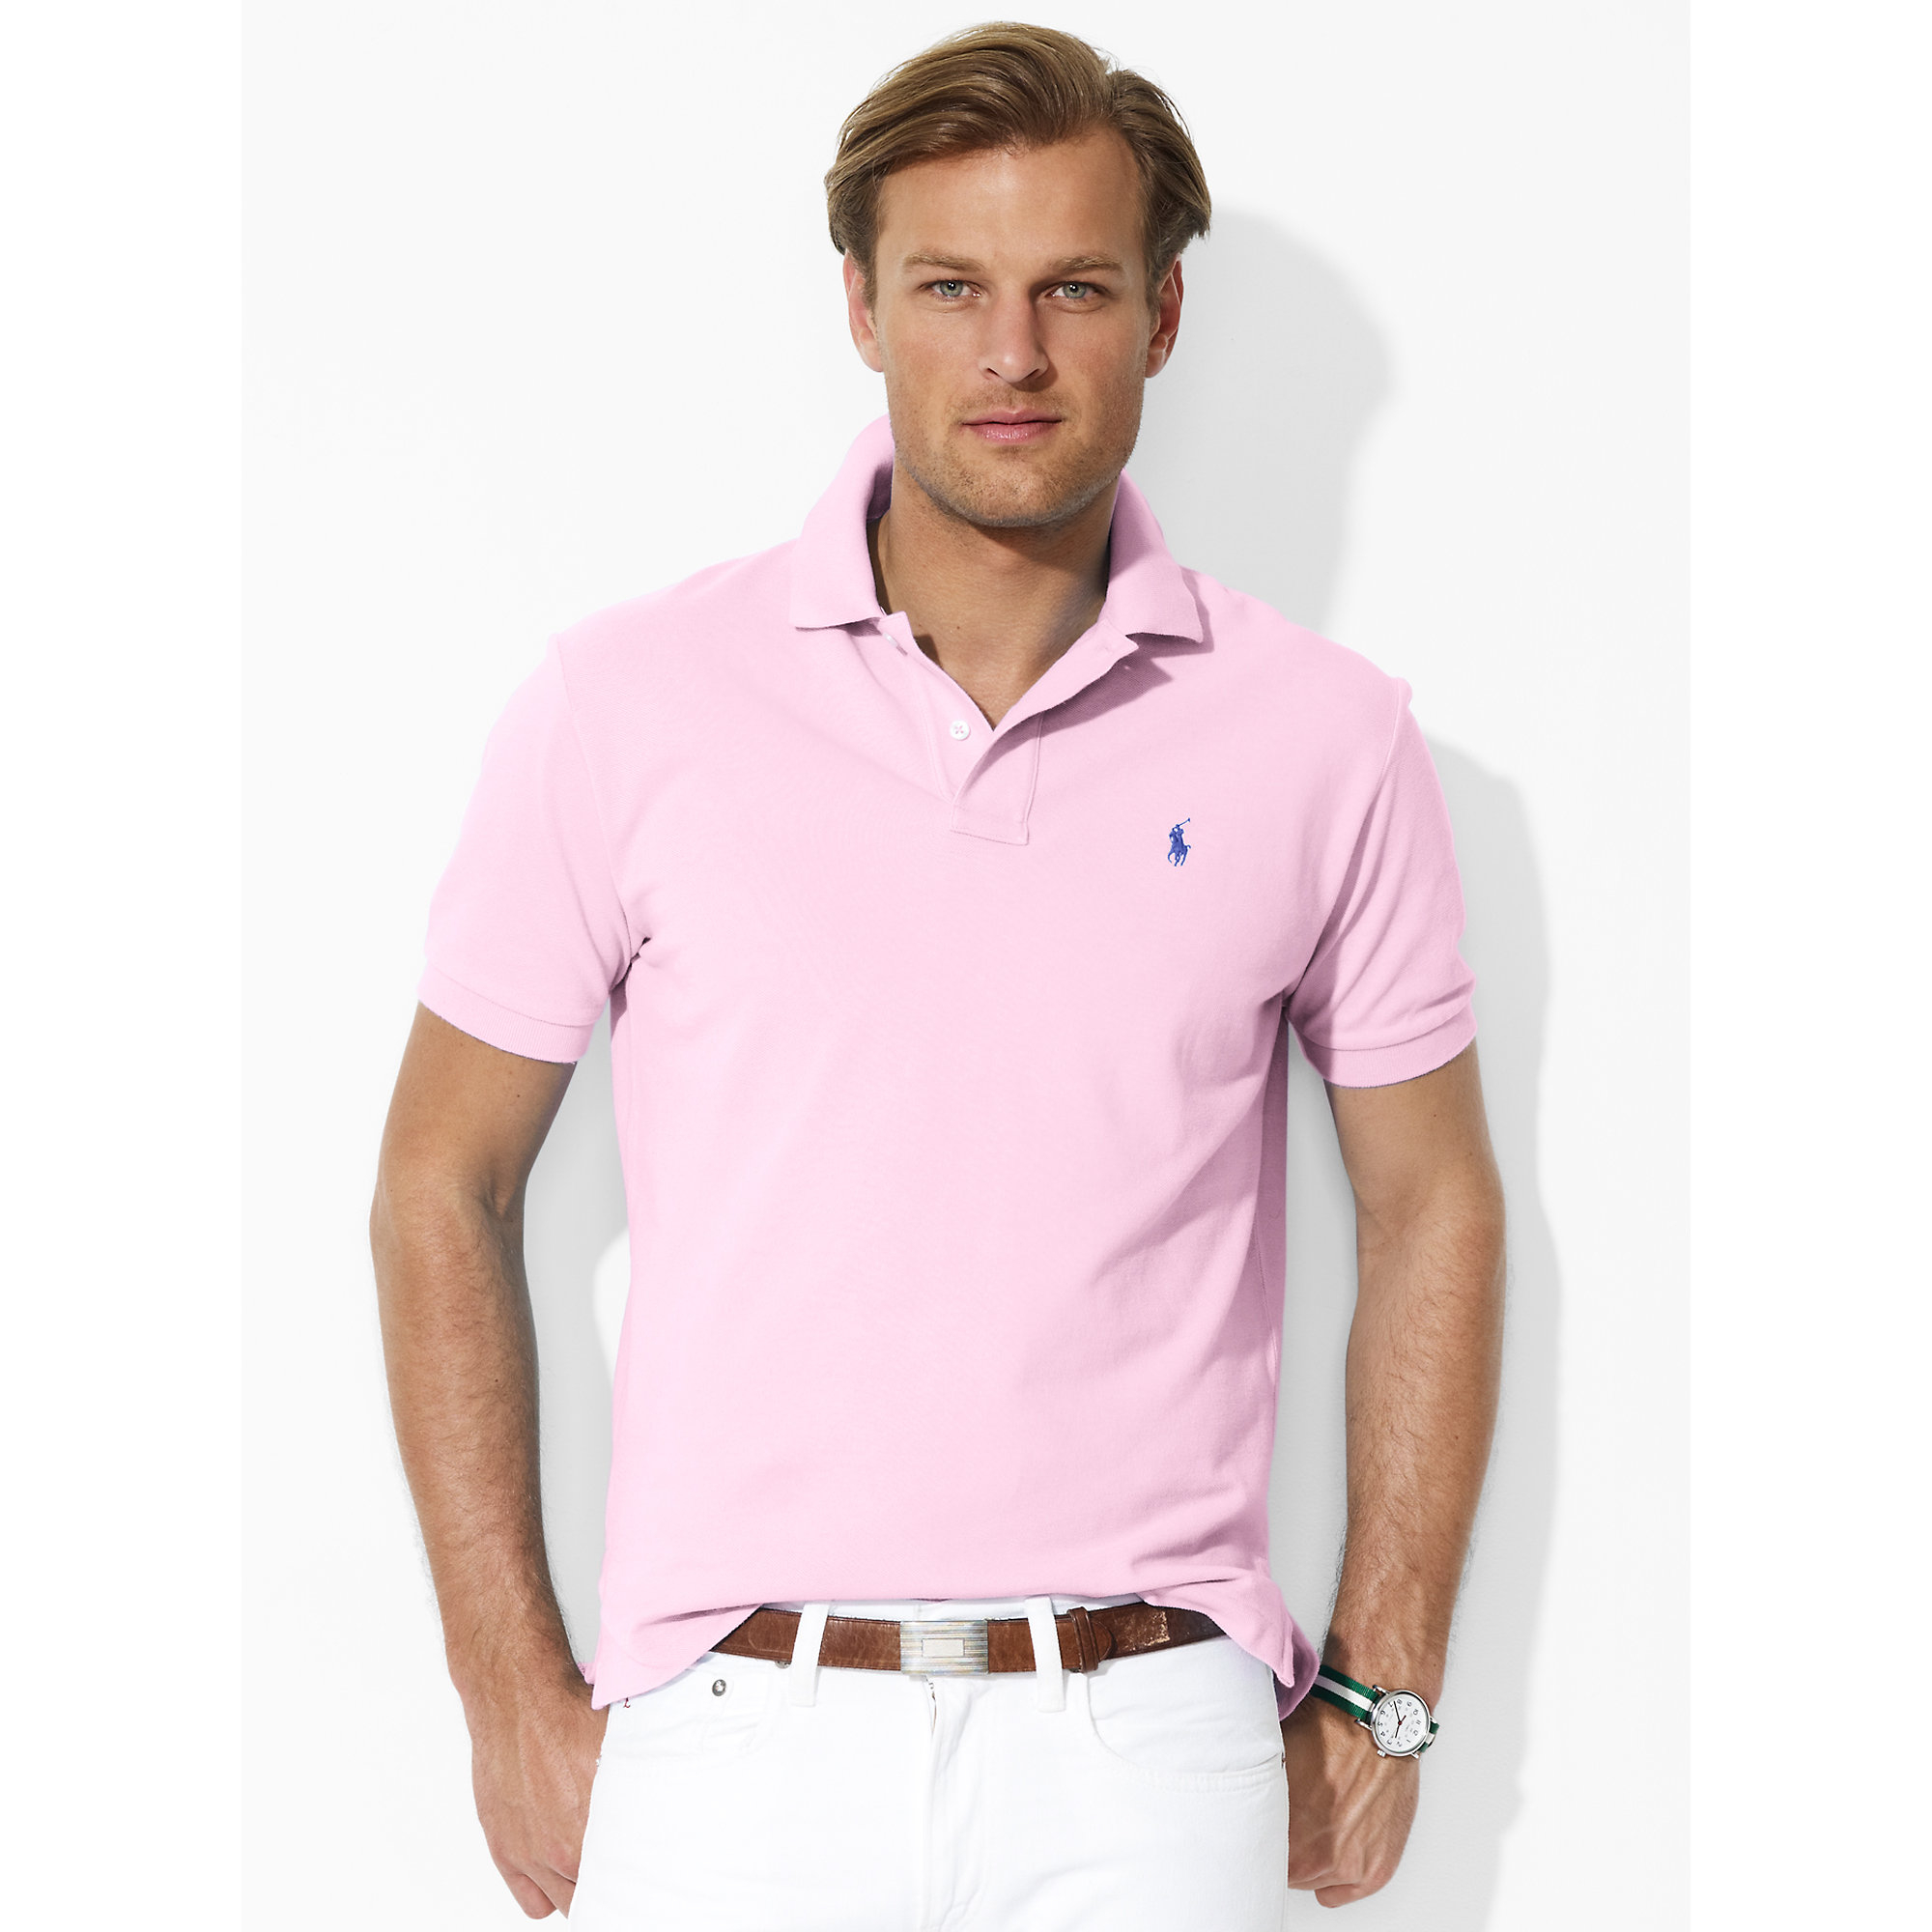 8ca46ec2 ... canada lyst polo ralph lauren classic fit mesh polo in pink for men  b8787 e4839